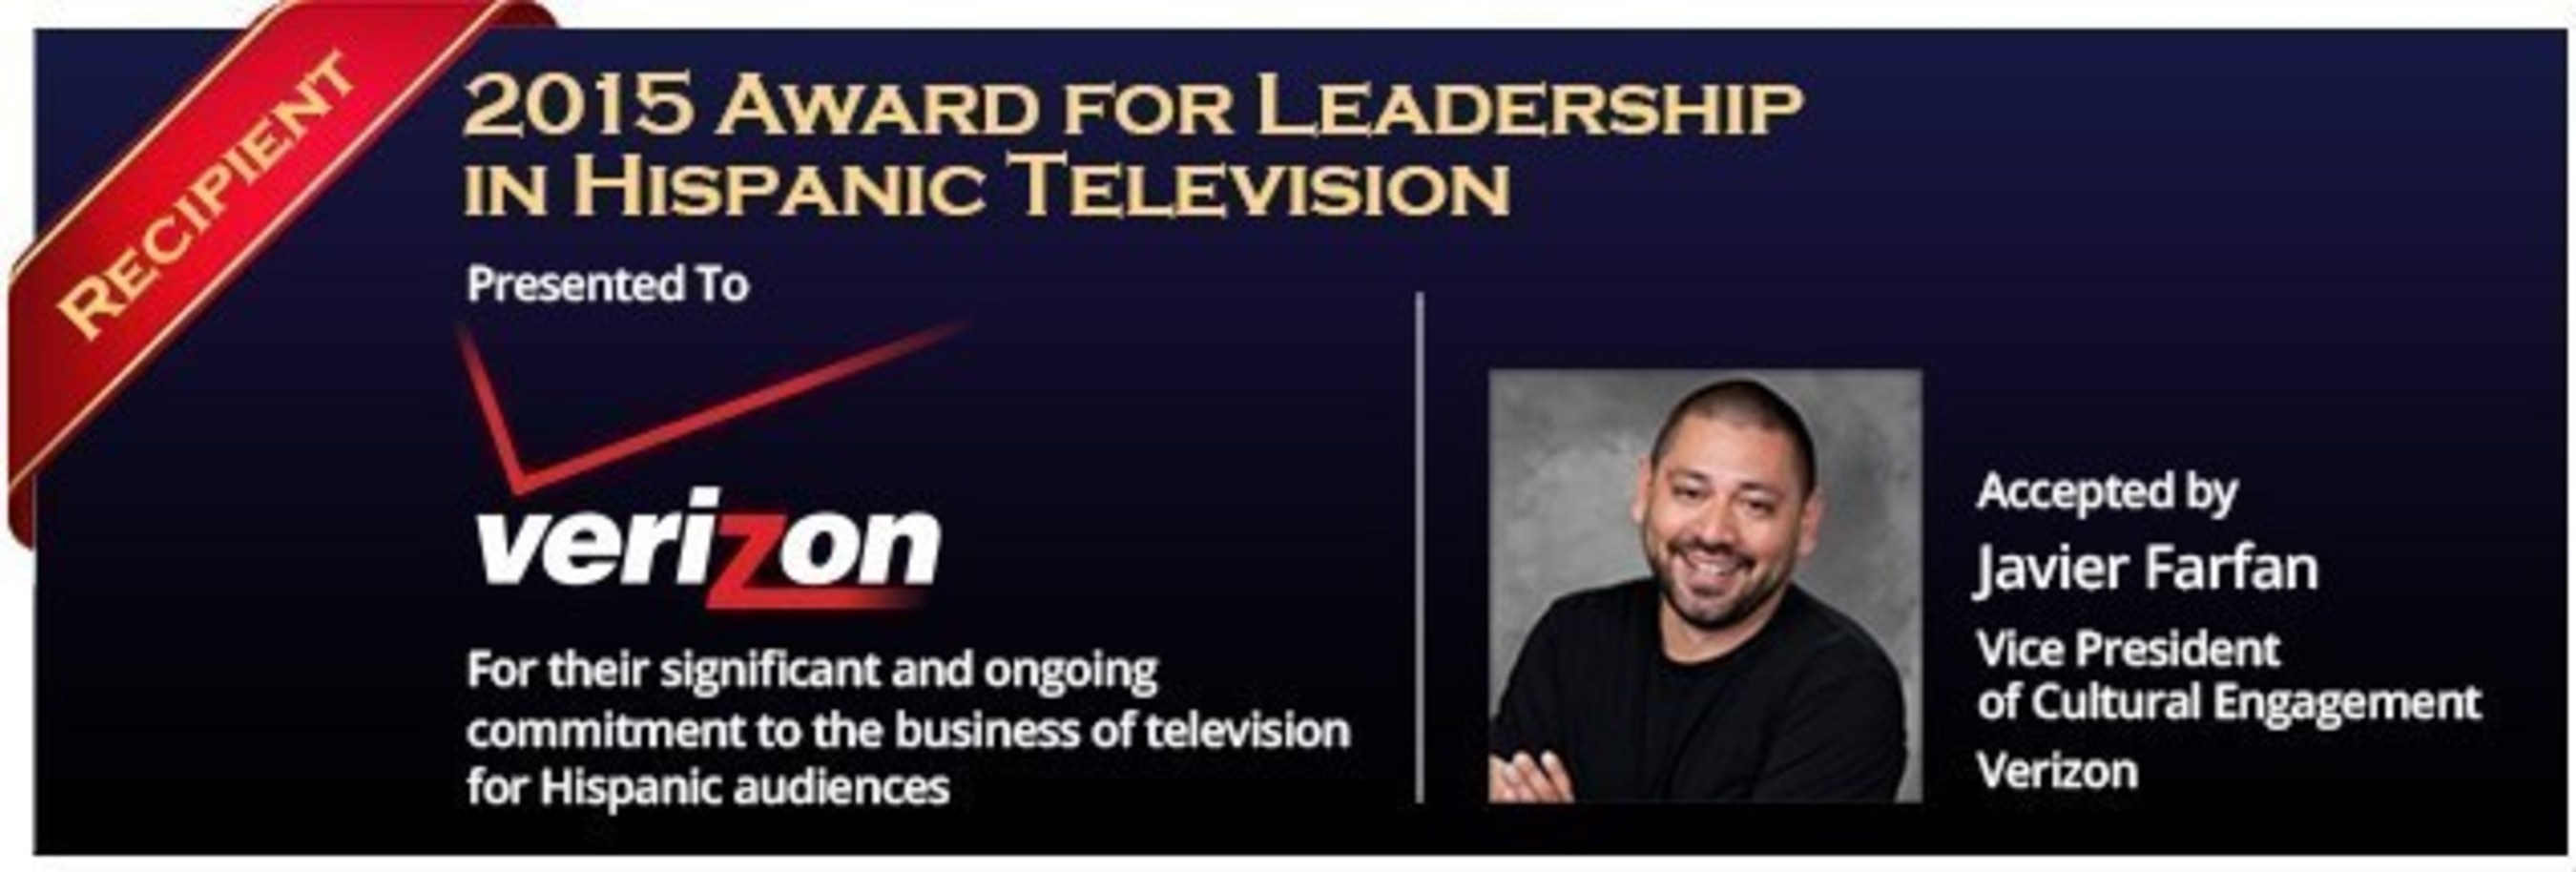 Verizon to Be Honored With 2015 Award For Leadership in Hispanic Television By Broadcasting & Cable